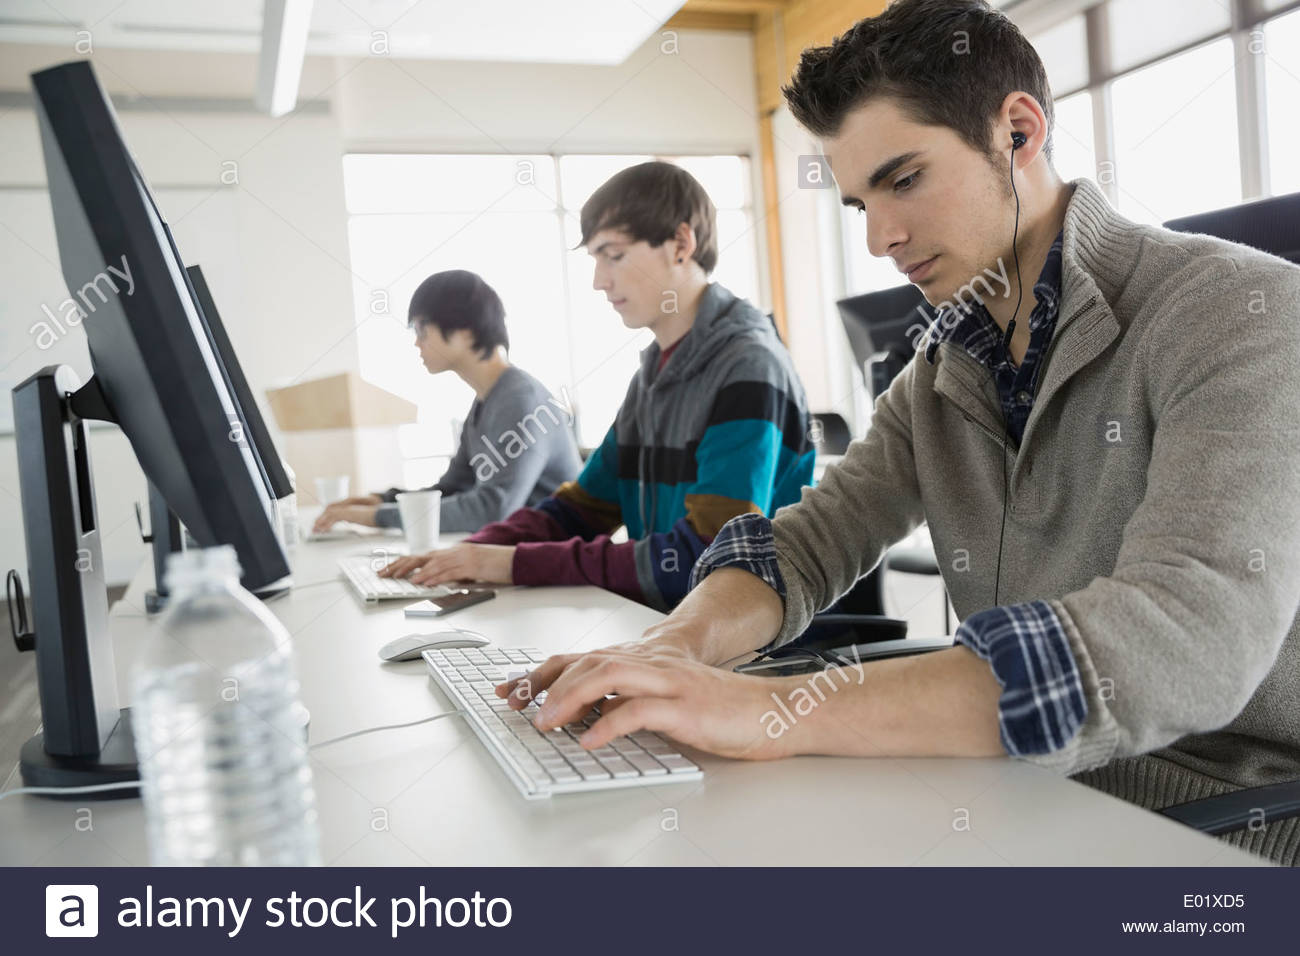 High school students in computer lab - Stock Image